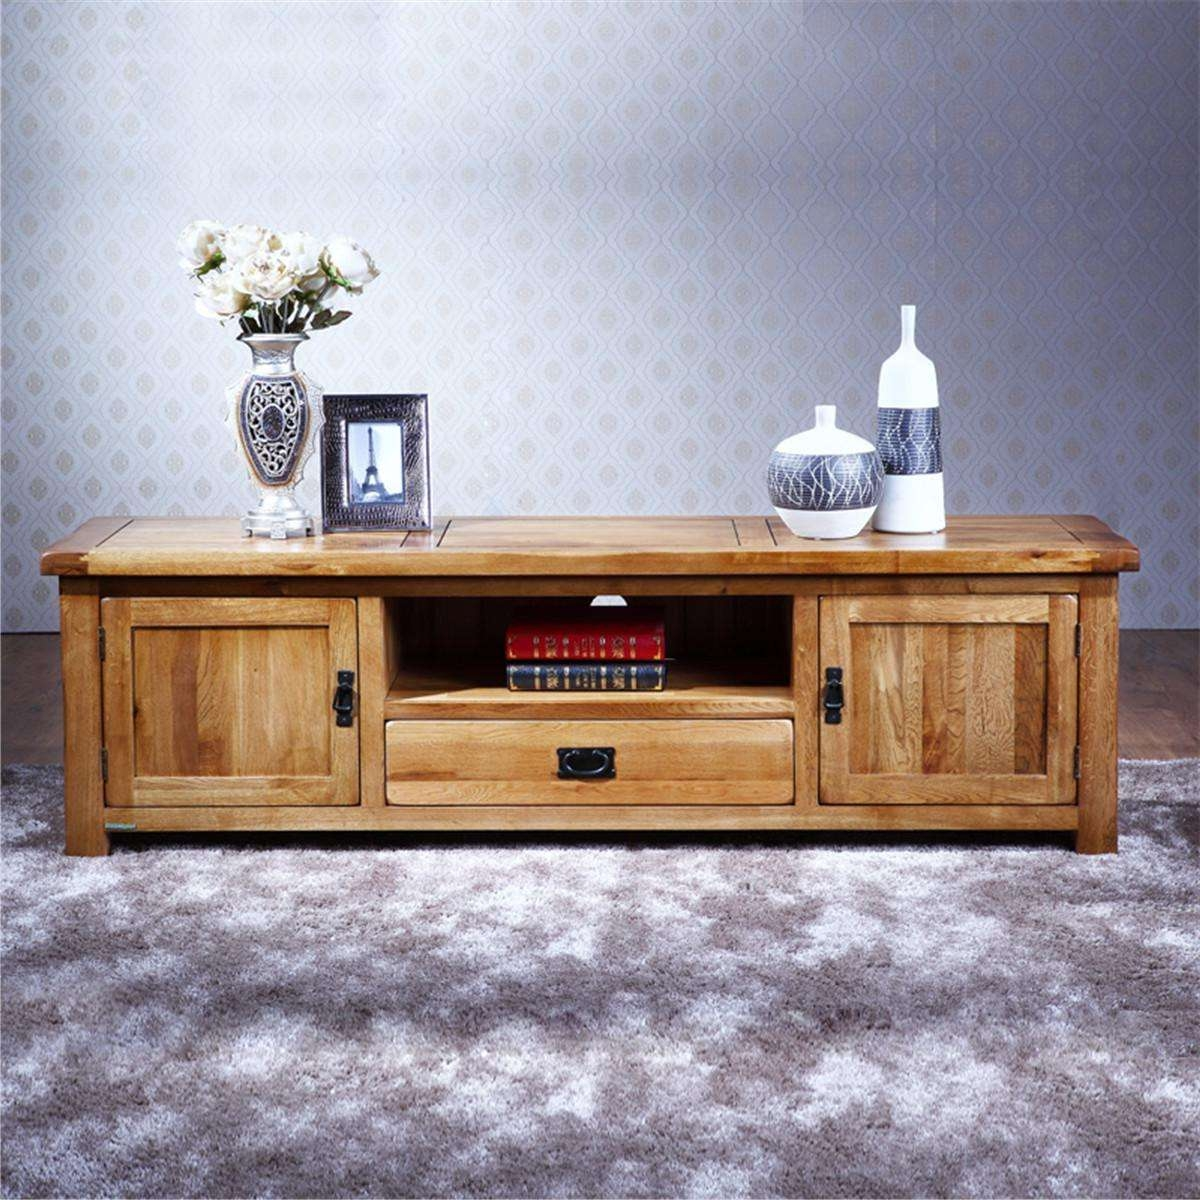 Pure Solid Wood Tv Stand Oak Media Console Inspirations Decoration In Wooden Tv Cabinets (View 4 of 20)